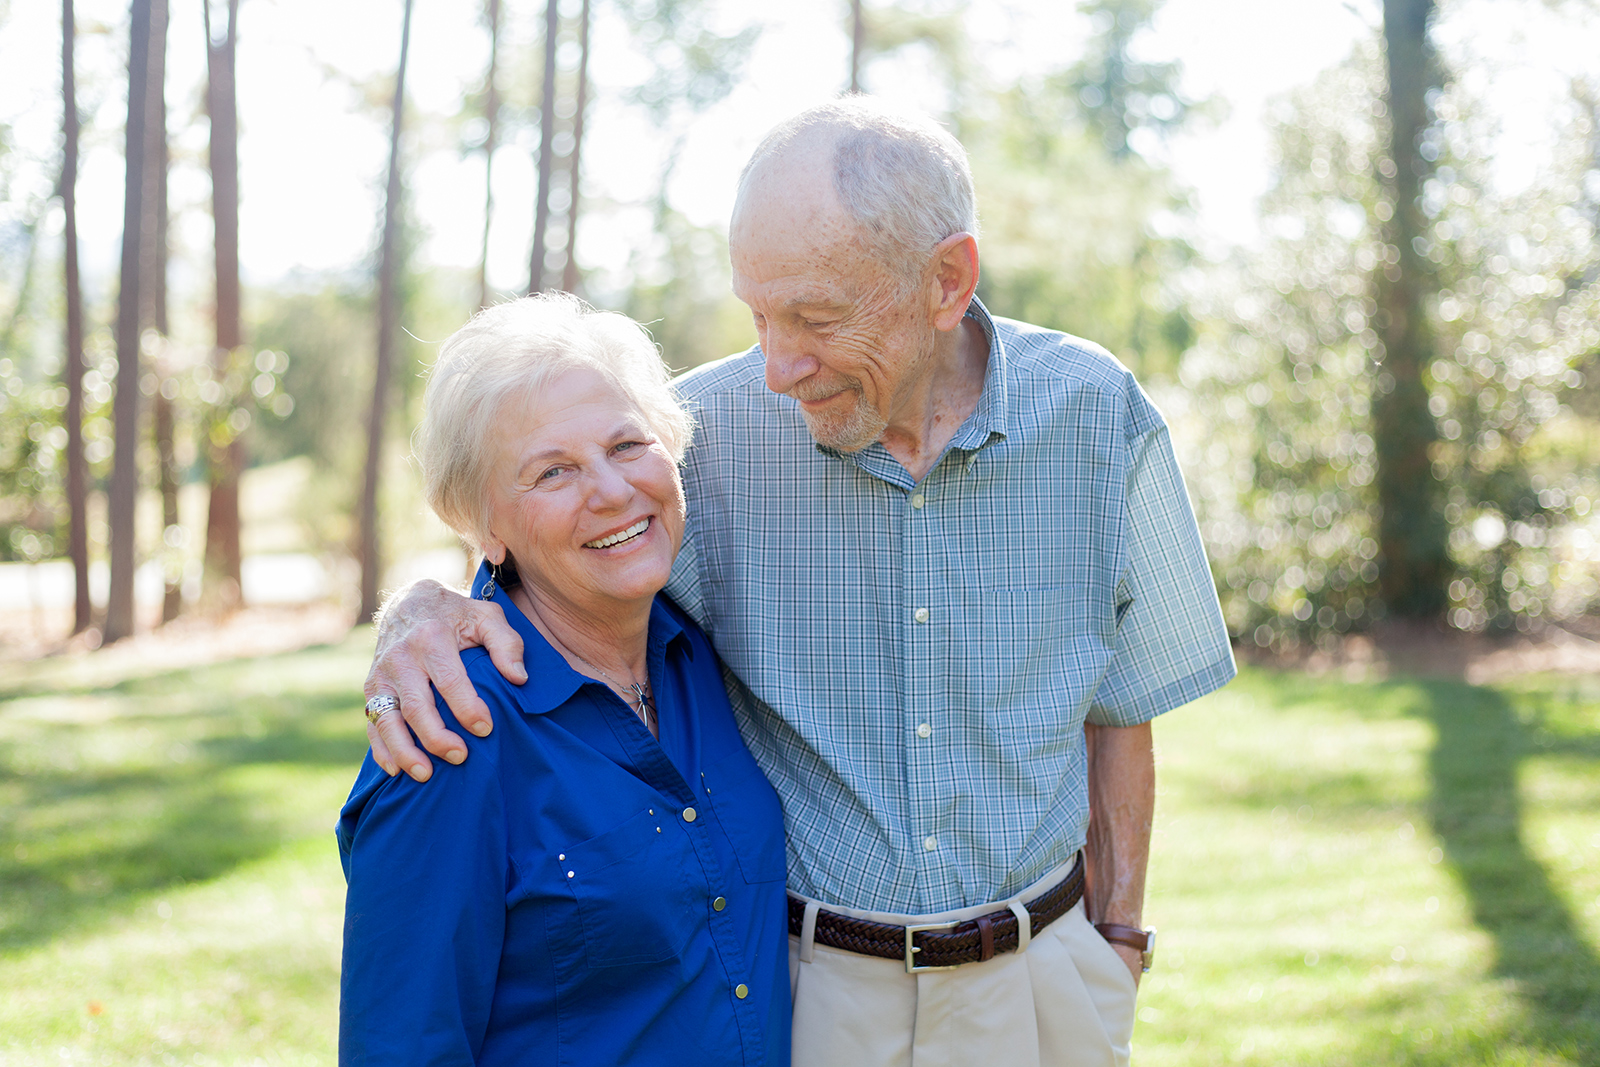 An elderly man has his arm around an elderly woman.